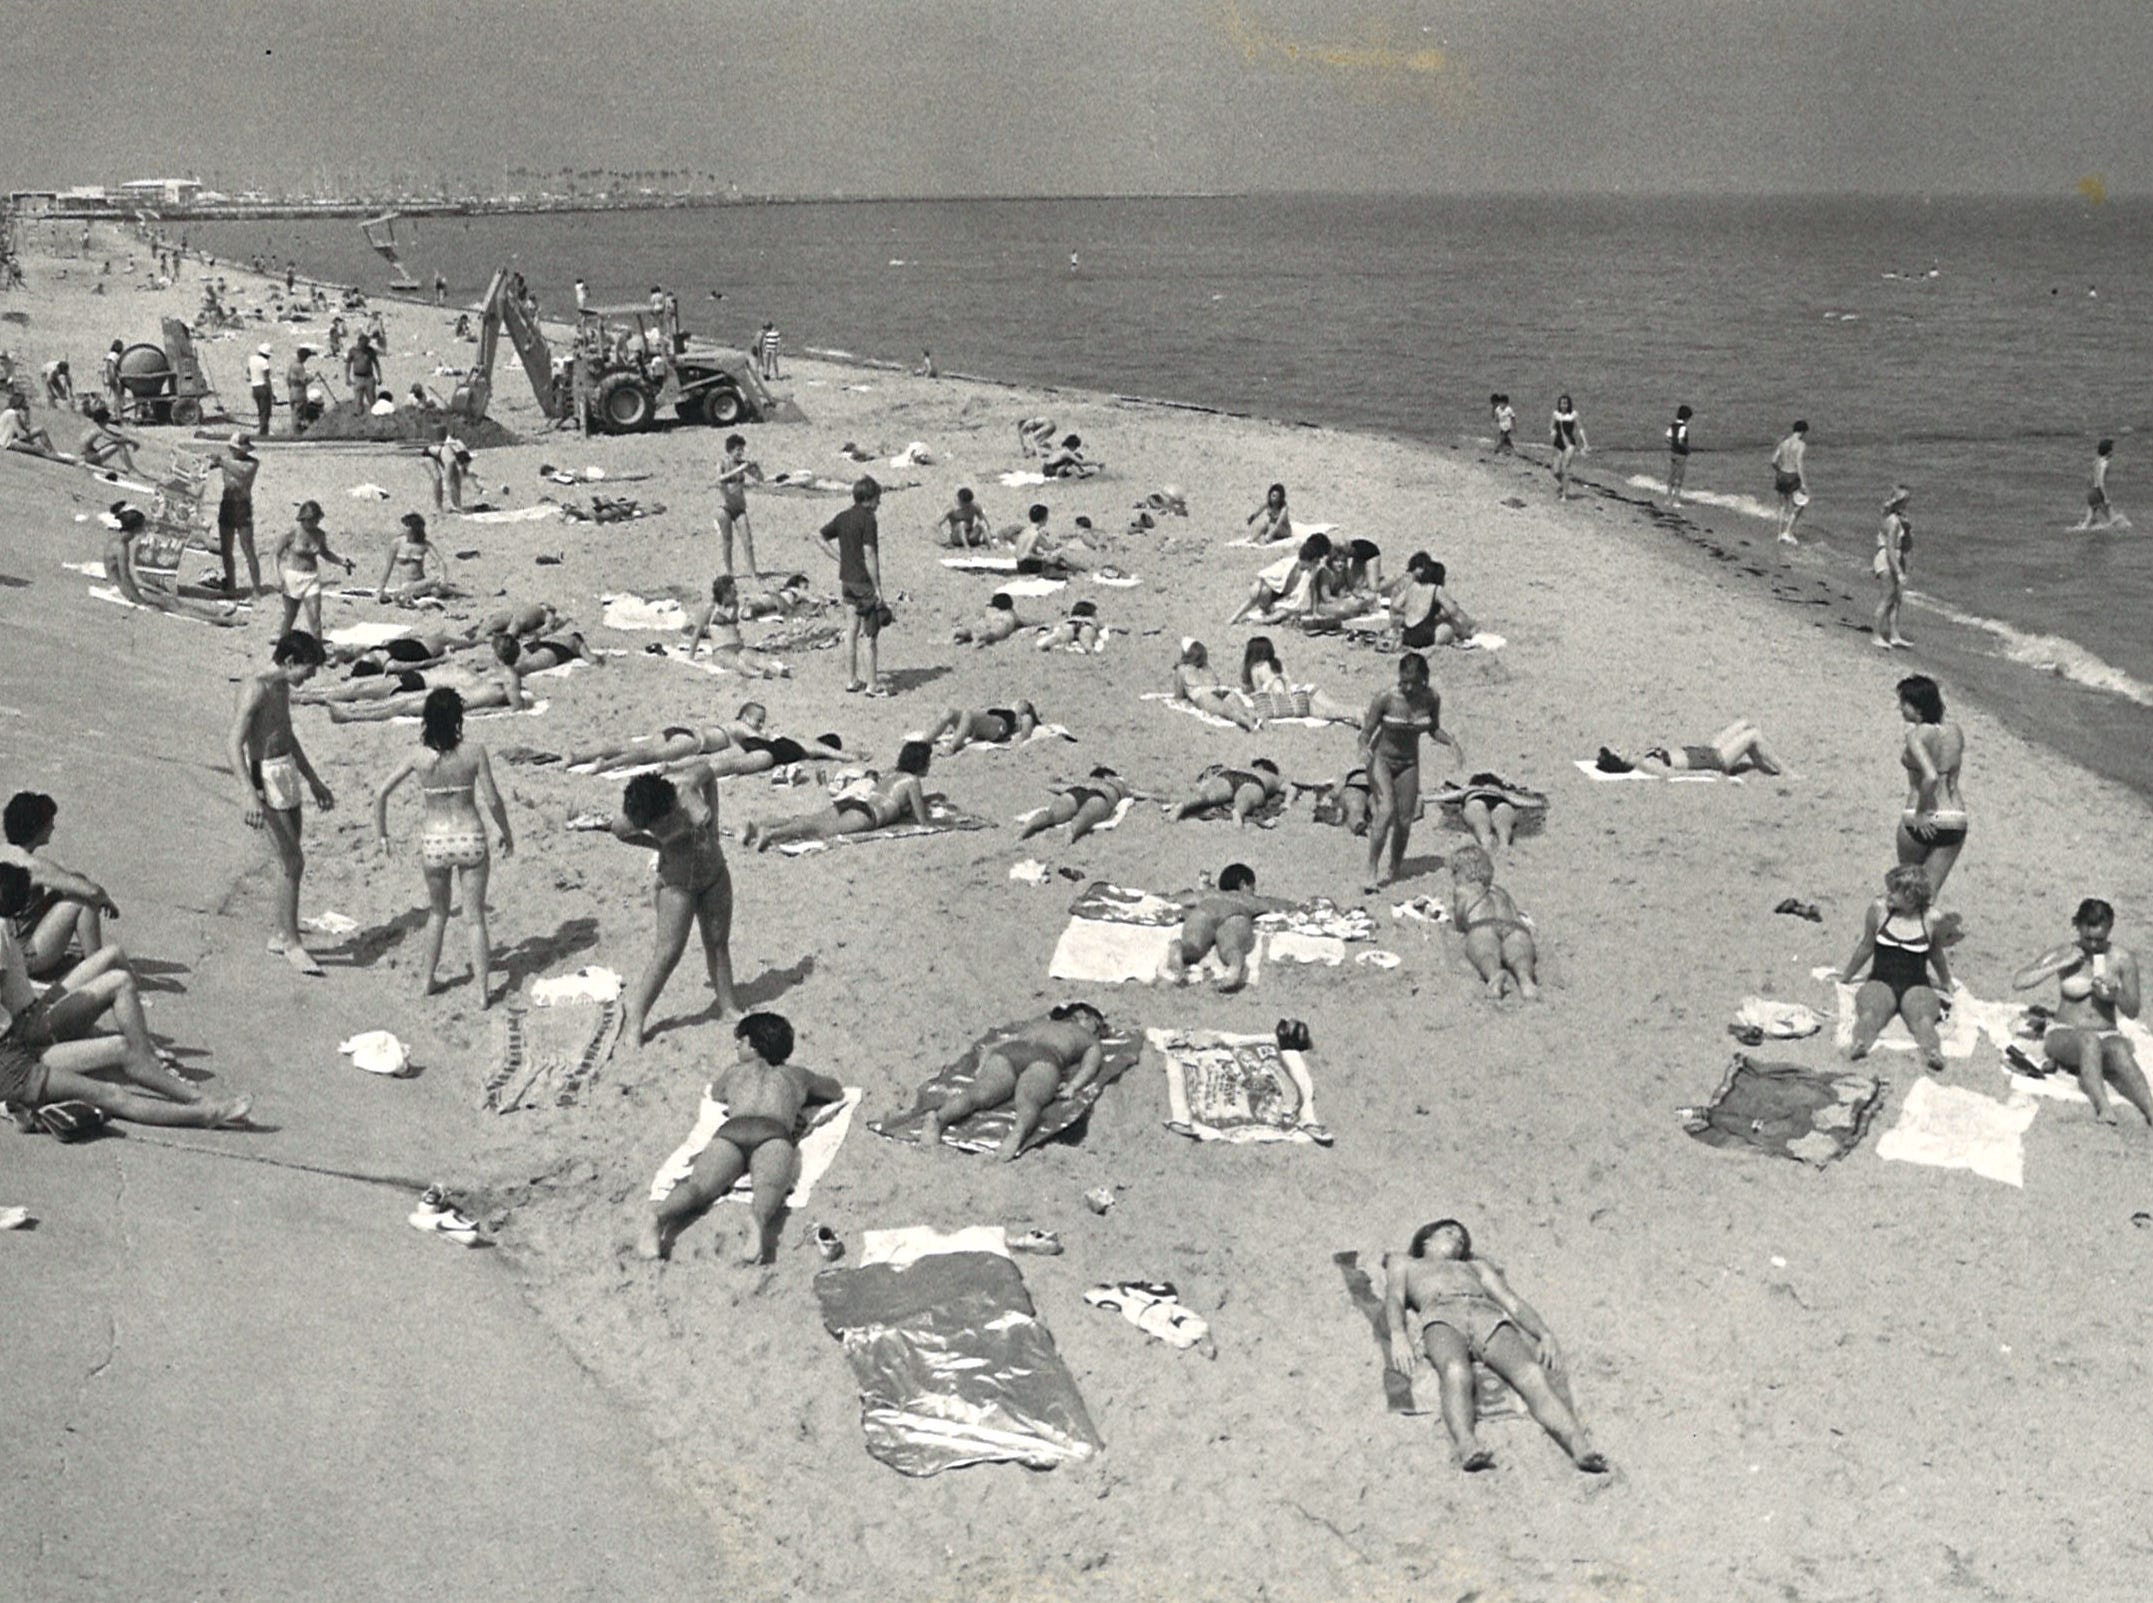 People enjoy McGee Beach in downtown Corpus Christi on April 2, 1980.